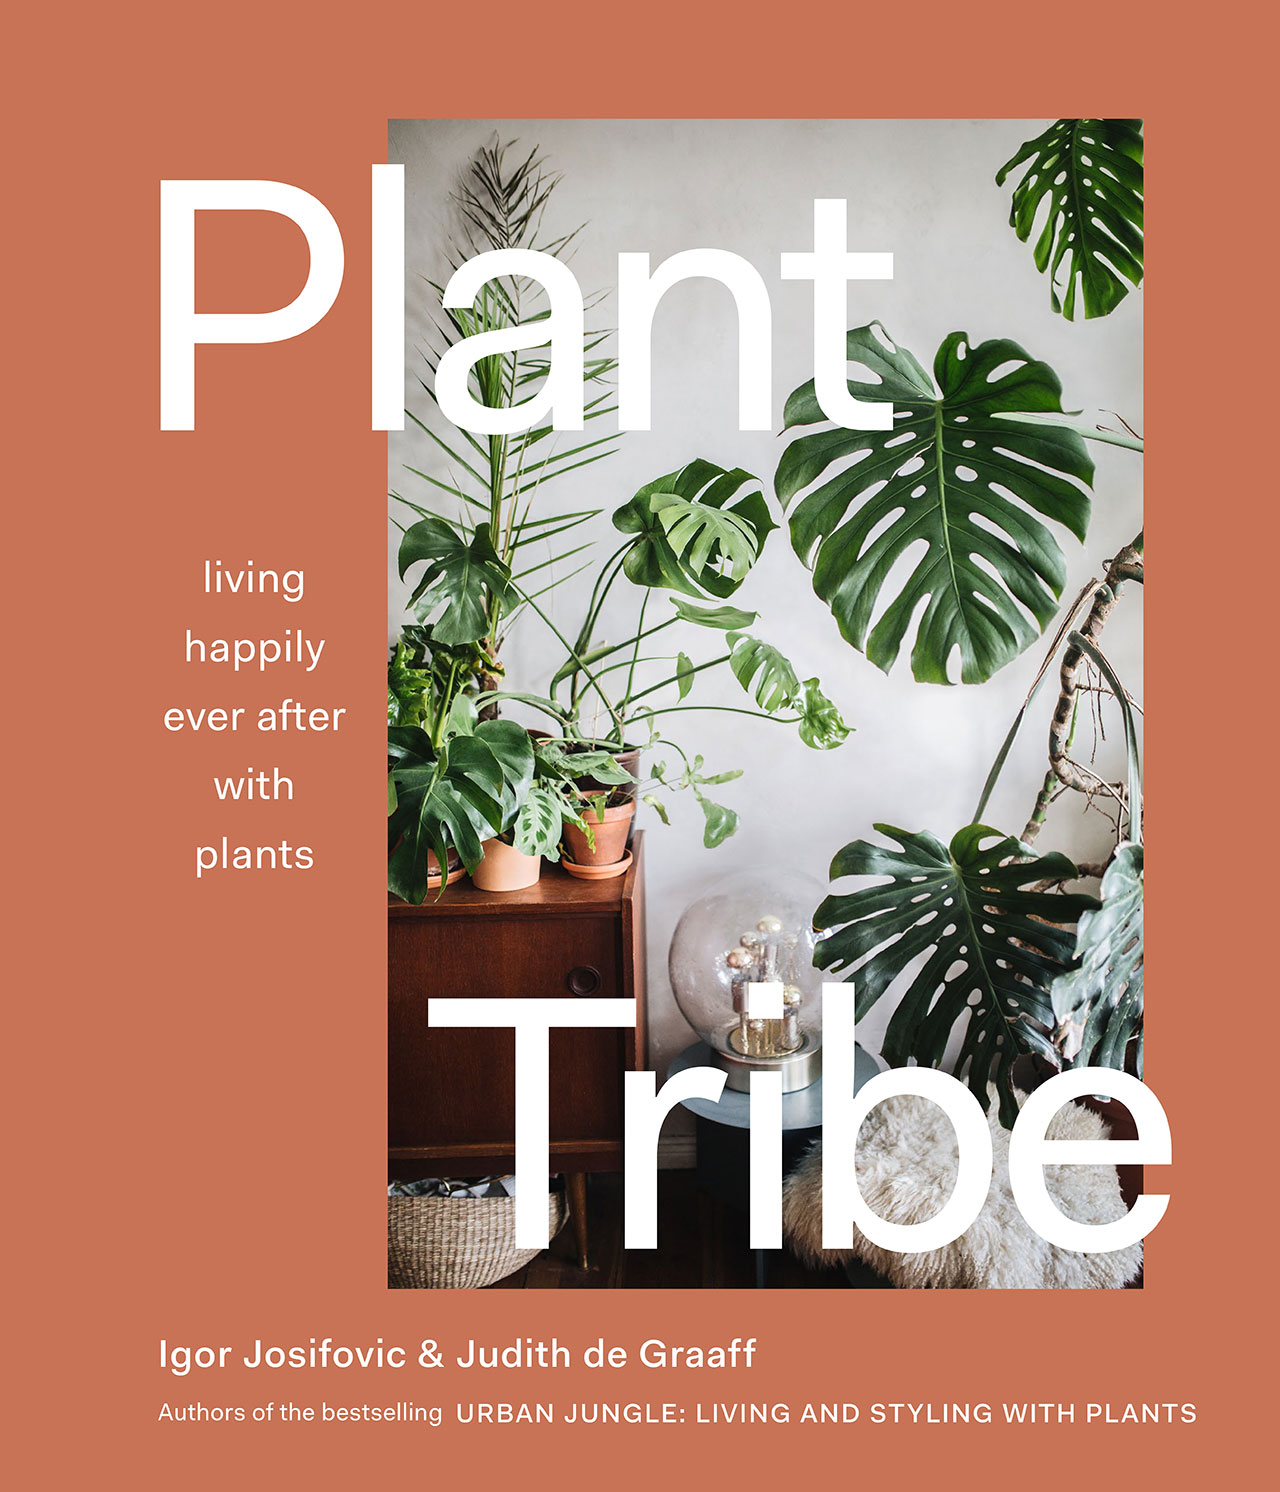 PLANT TRIBE LIVING HAPPILY EVER AFTER WITH PLANTSBy Igor Josifovic & Judith de Graaff Book cover.